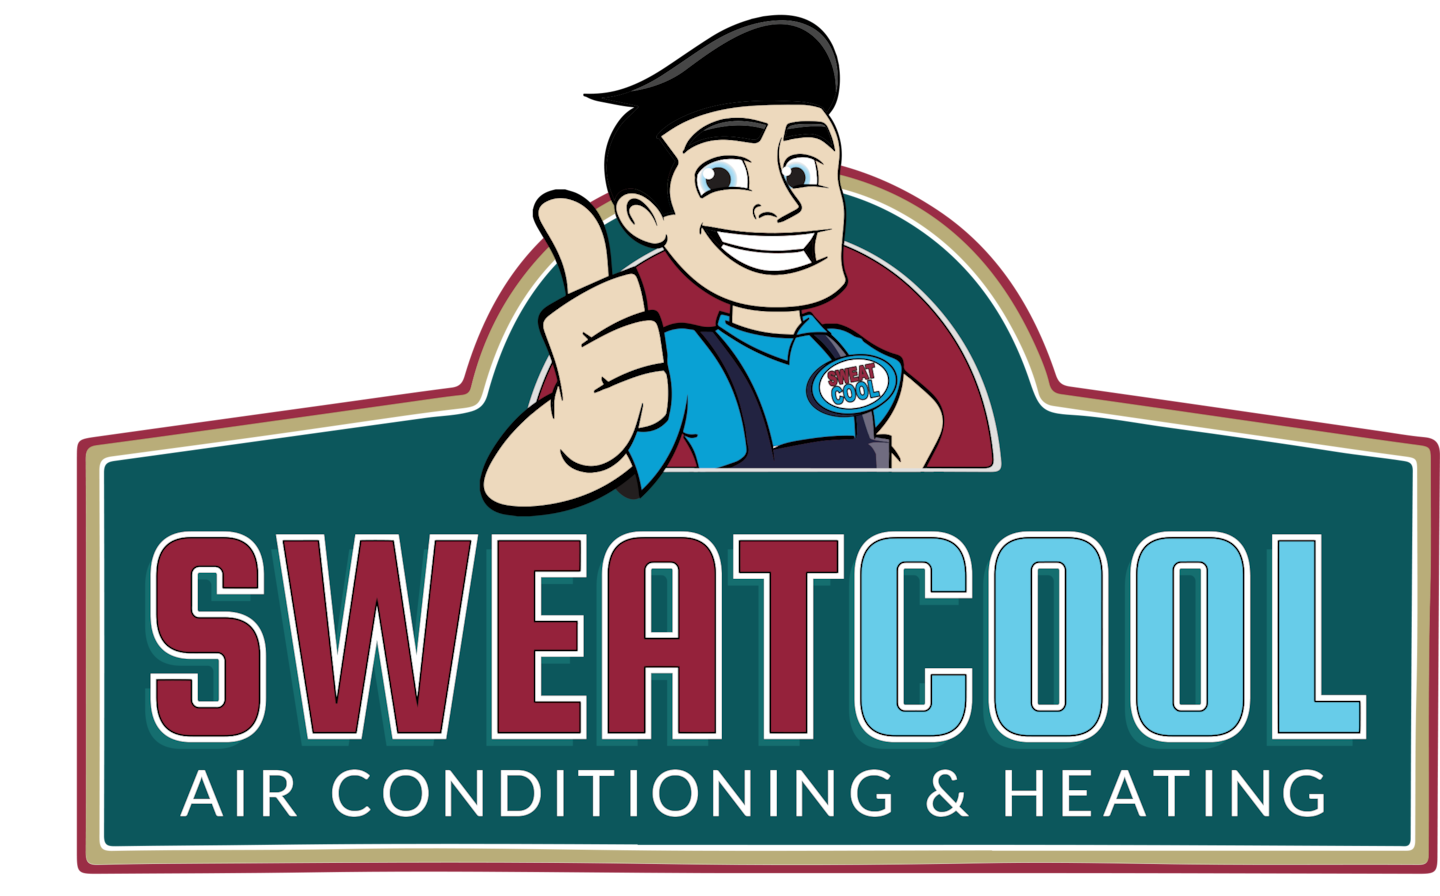 Sweat Cool Air Conditioning and Heating, LLC